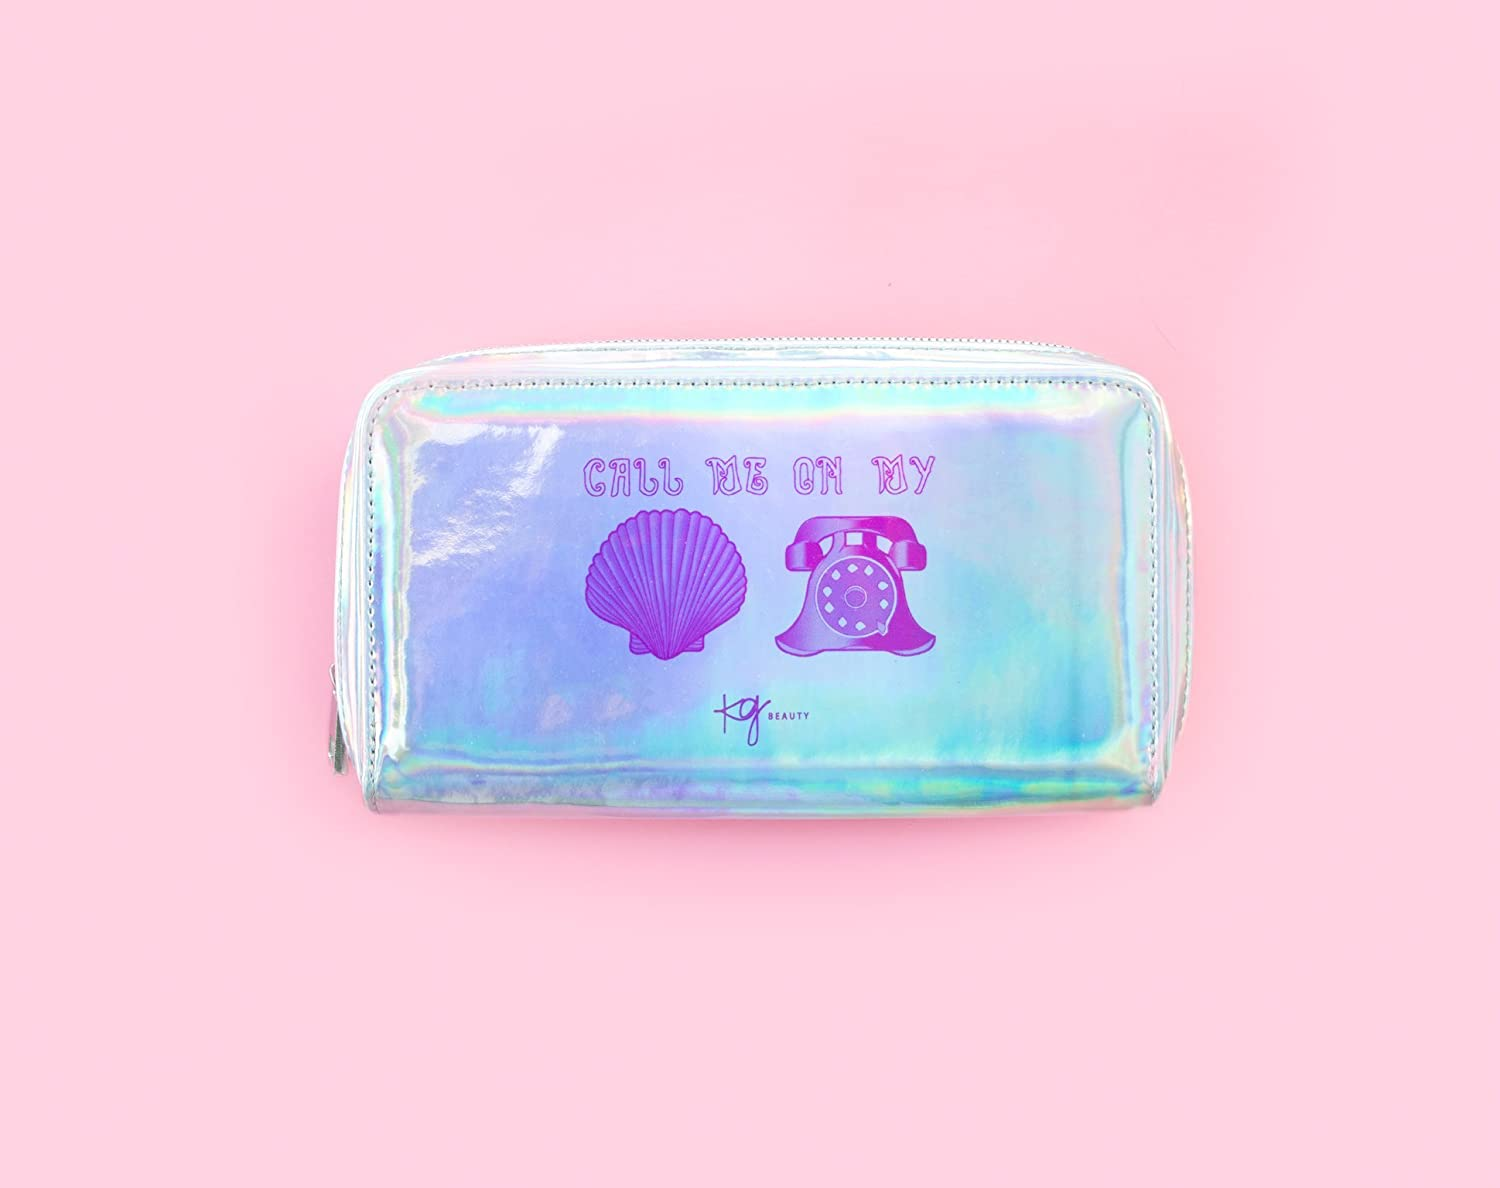 "Holographic Mermaid Makeup Bag Toiletry Travel Bag Organizer ""Call Me On My Shell Phone"" Cosmetic Bag Mermaid Makeup Brush Bag Organizer by Kg Beauty"